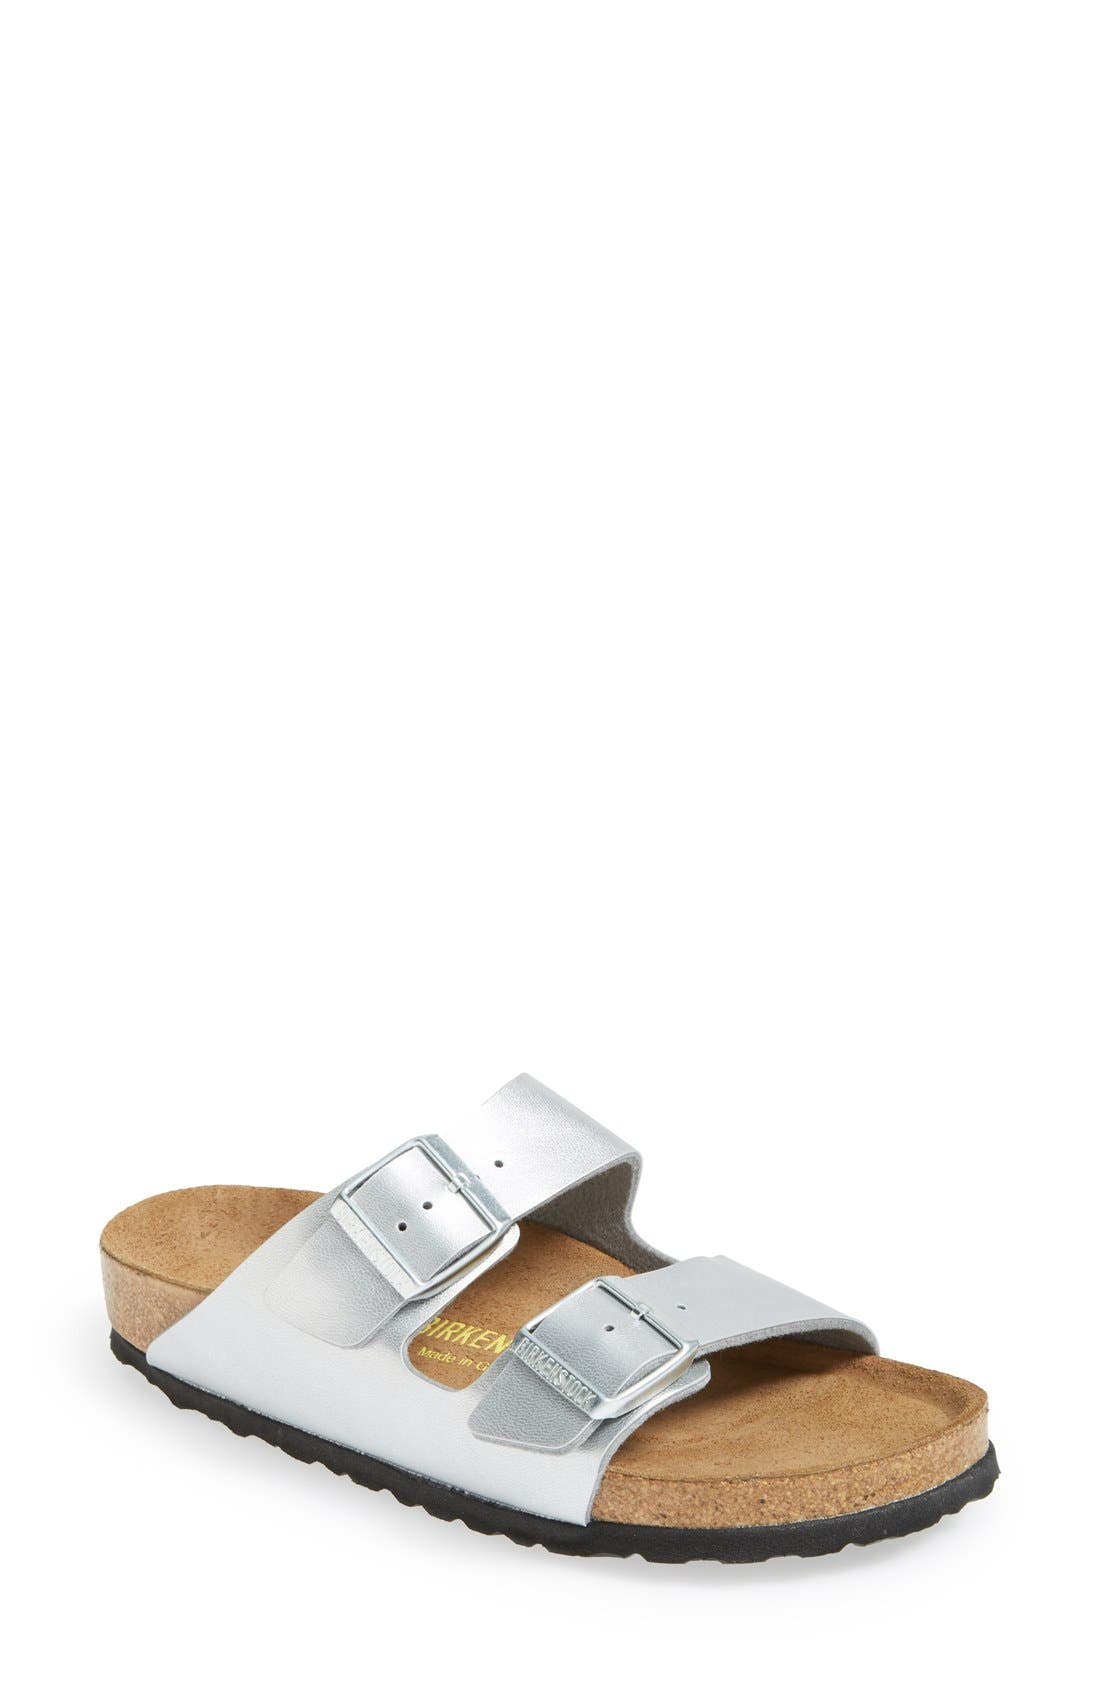 'Arizona Birko-Flor' Soft Footbed Sandal,                             Main thumbnail 1, color,